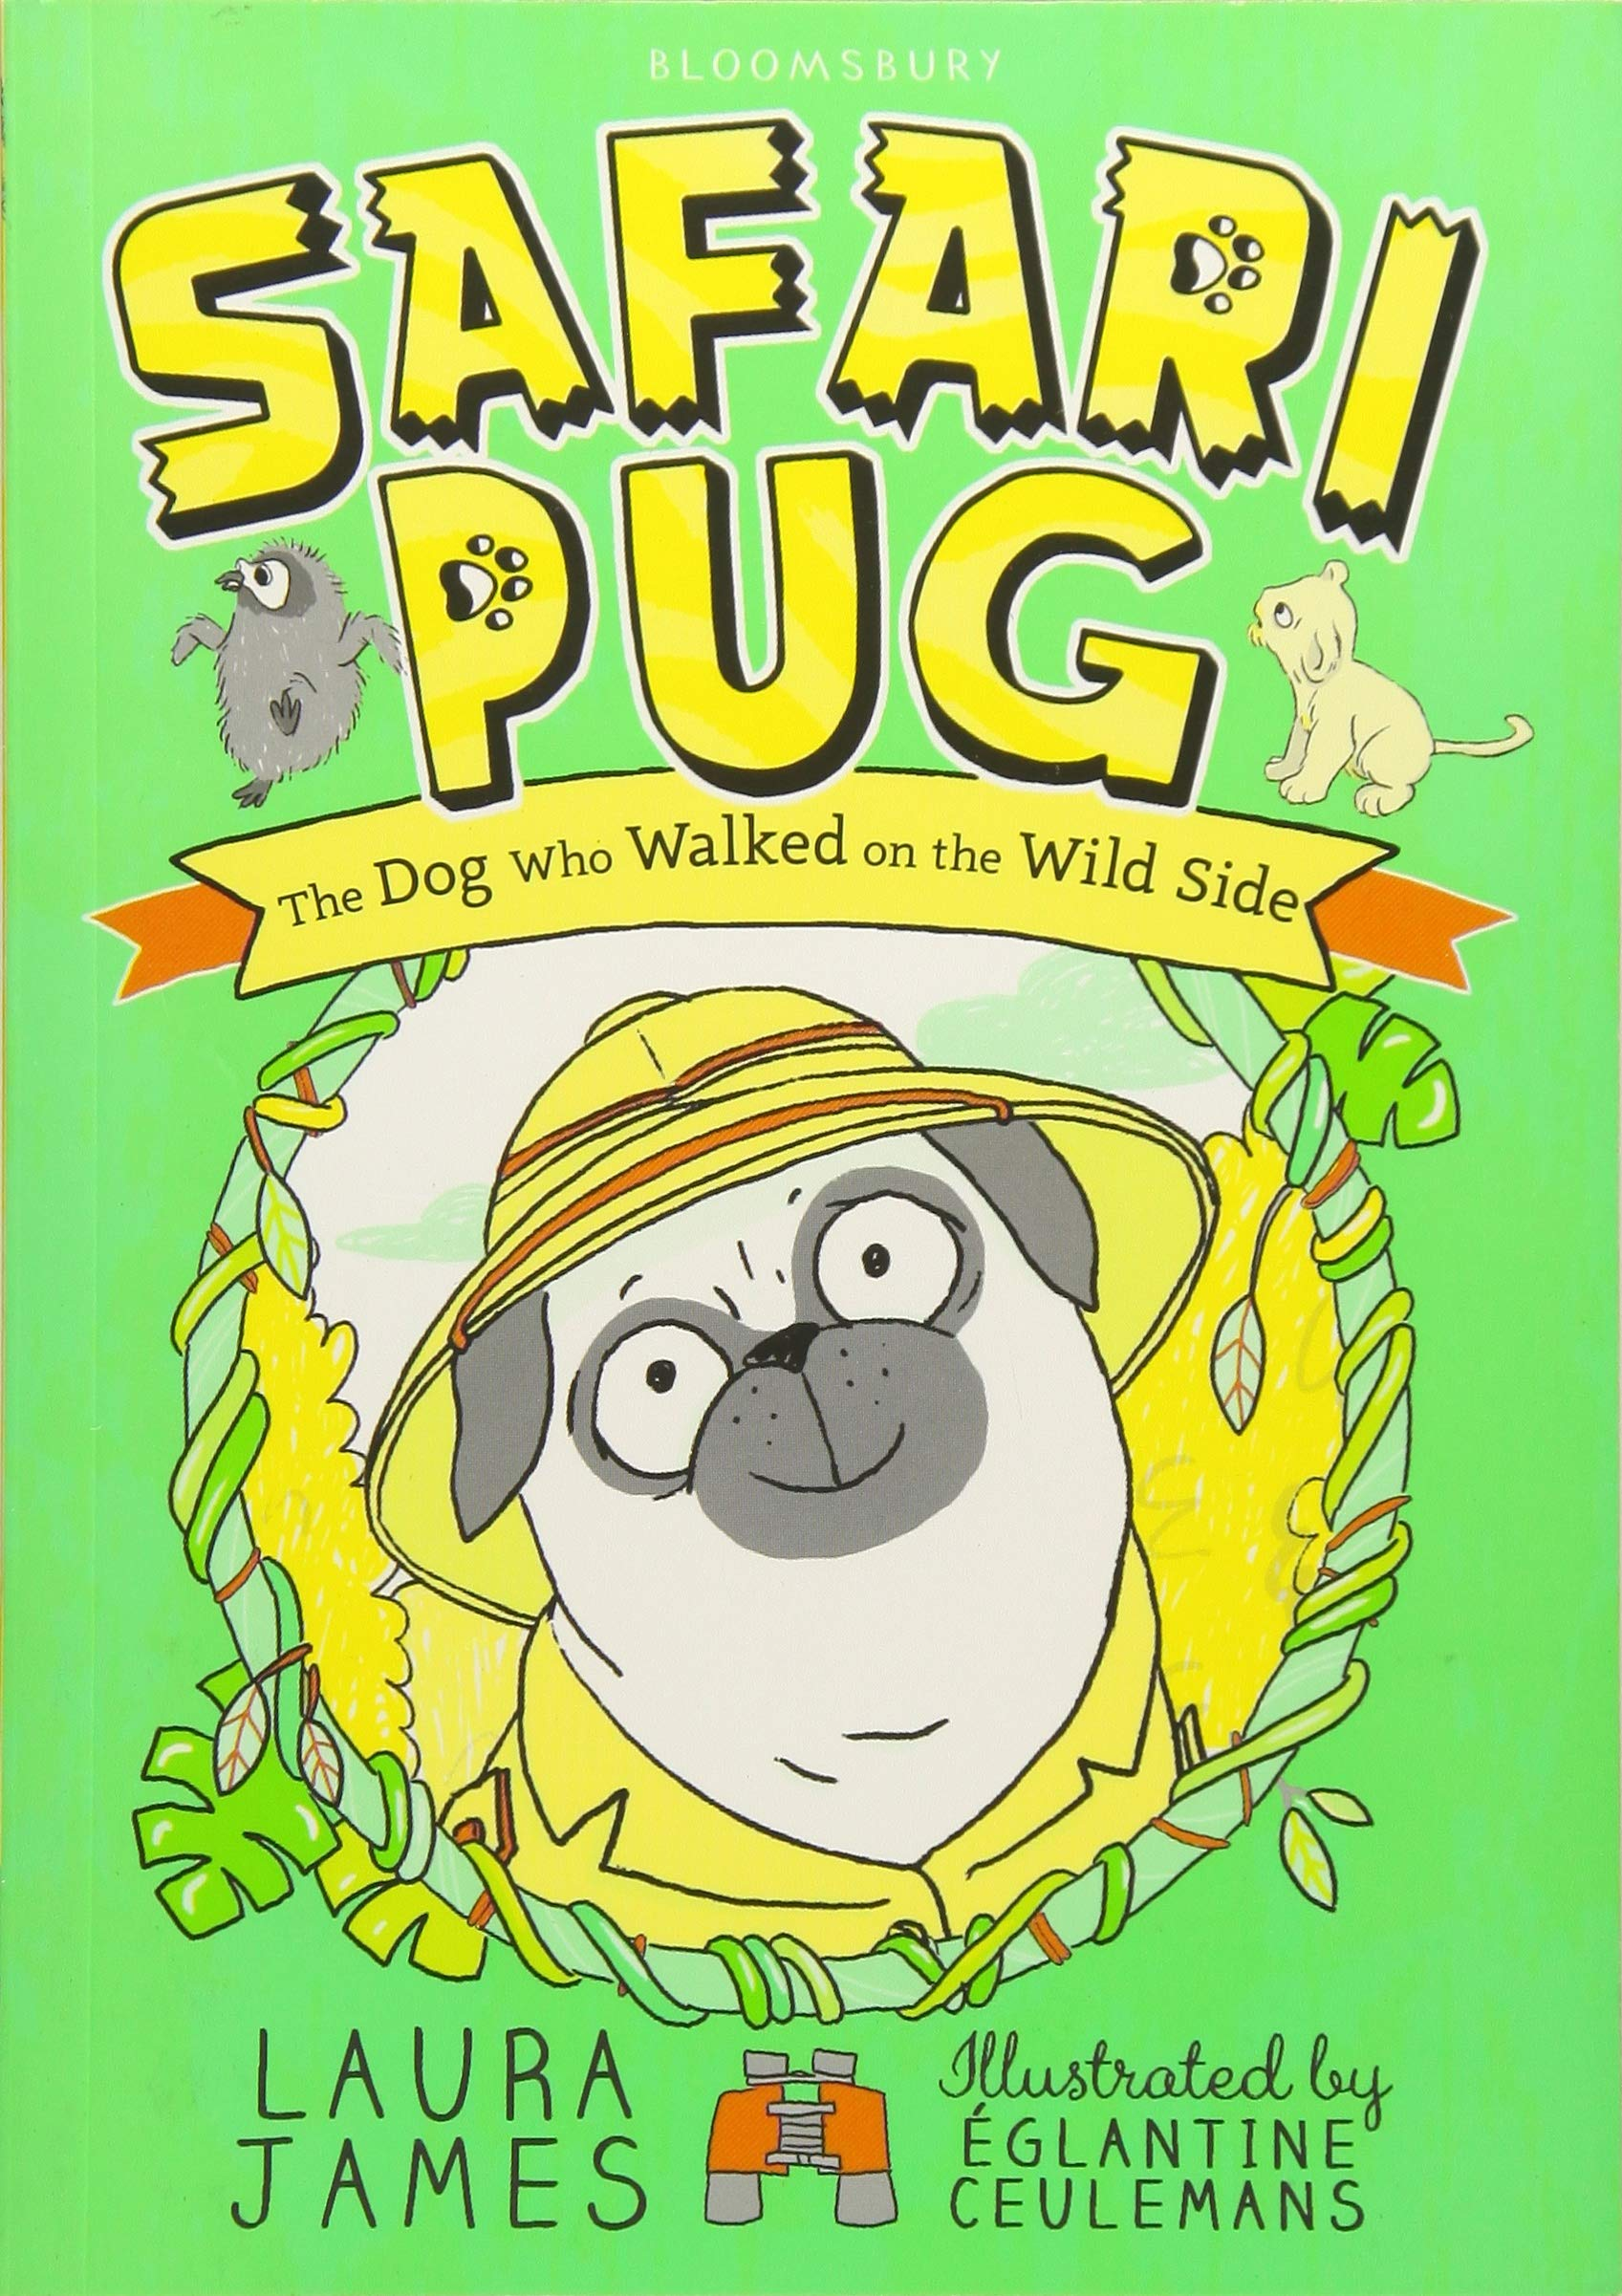 Cover art for the book entitled Safari Pug